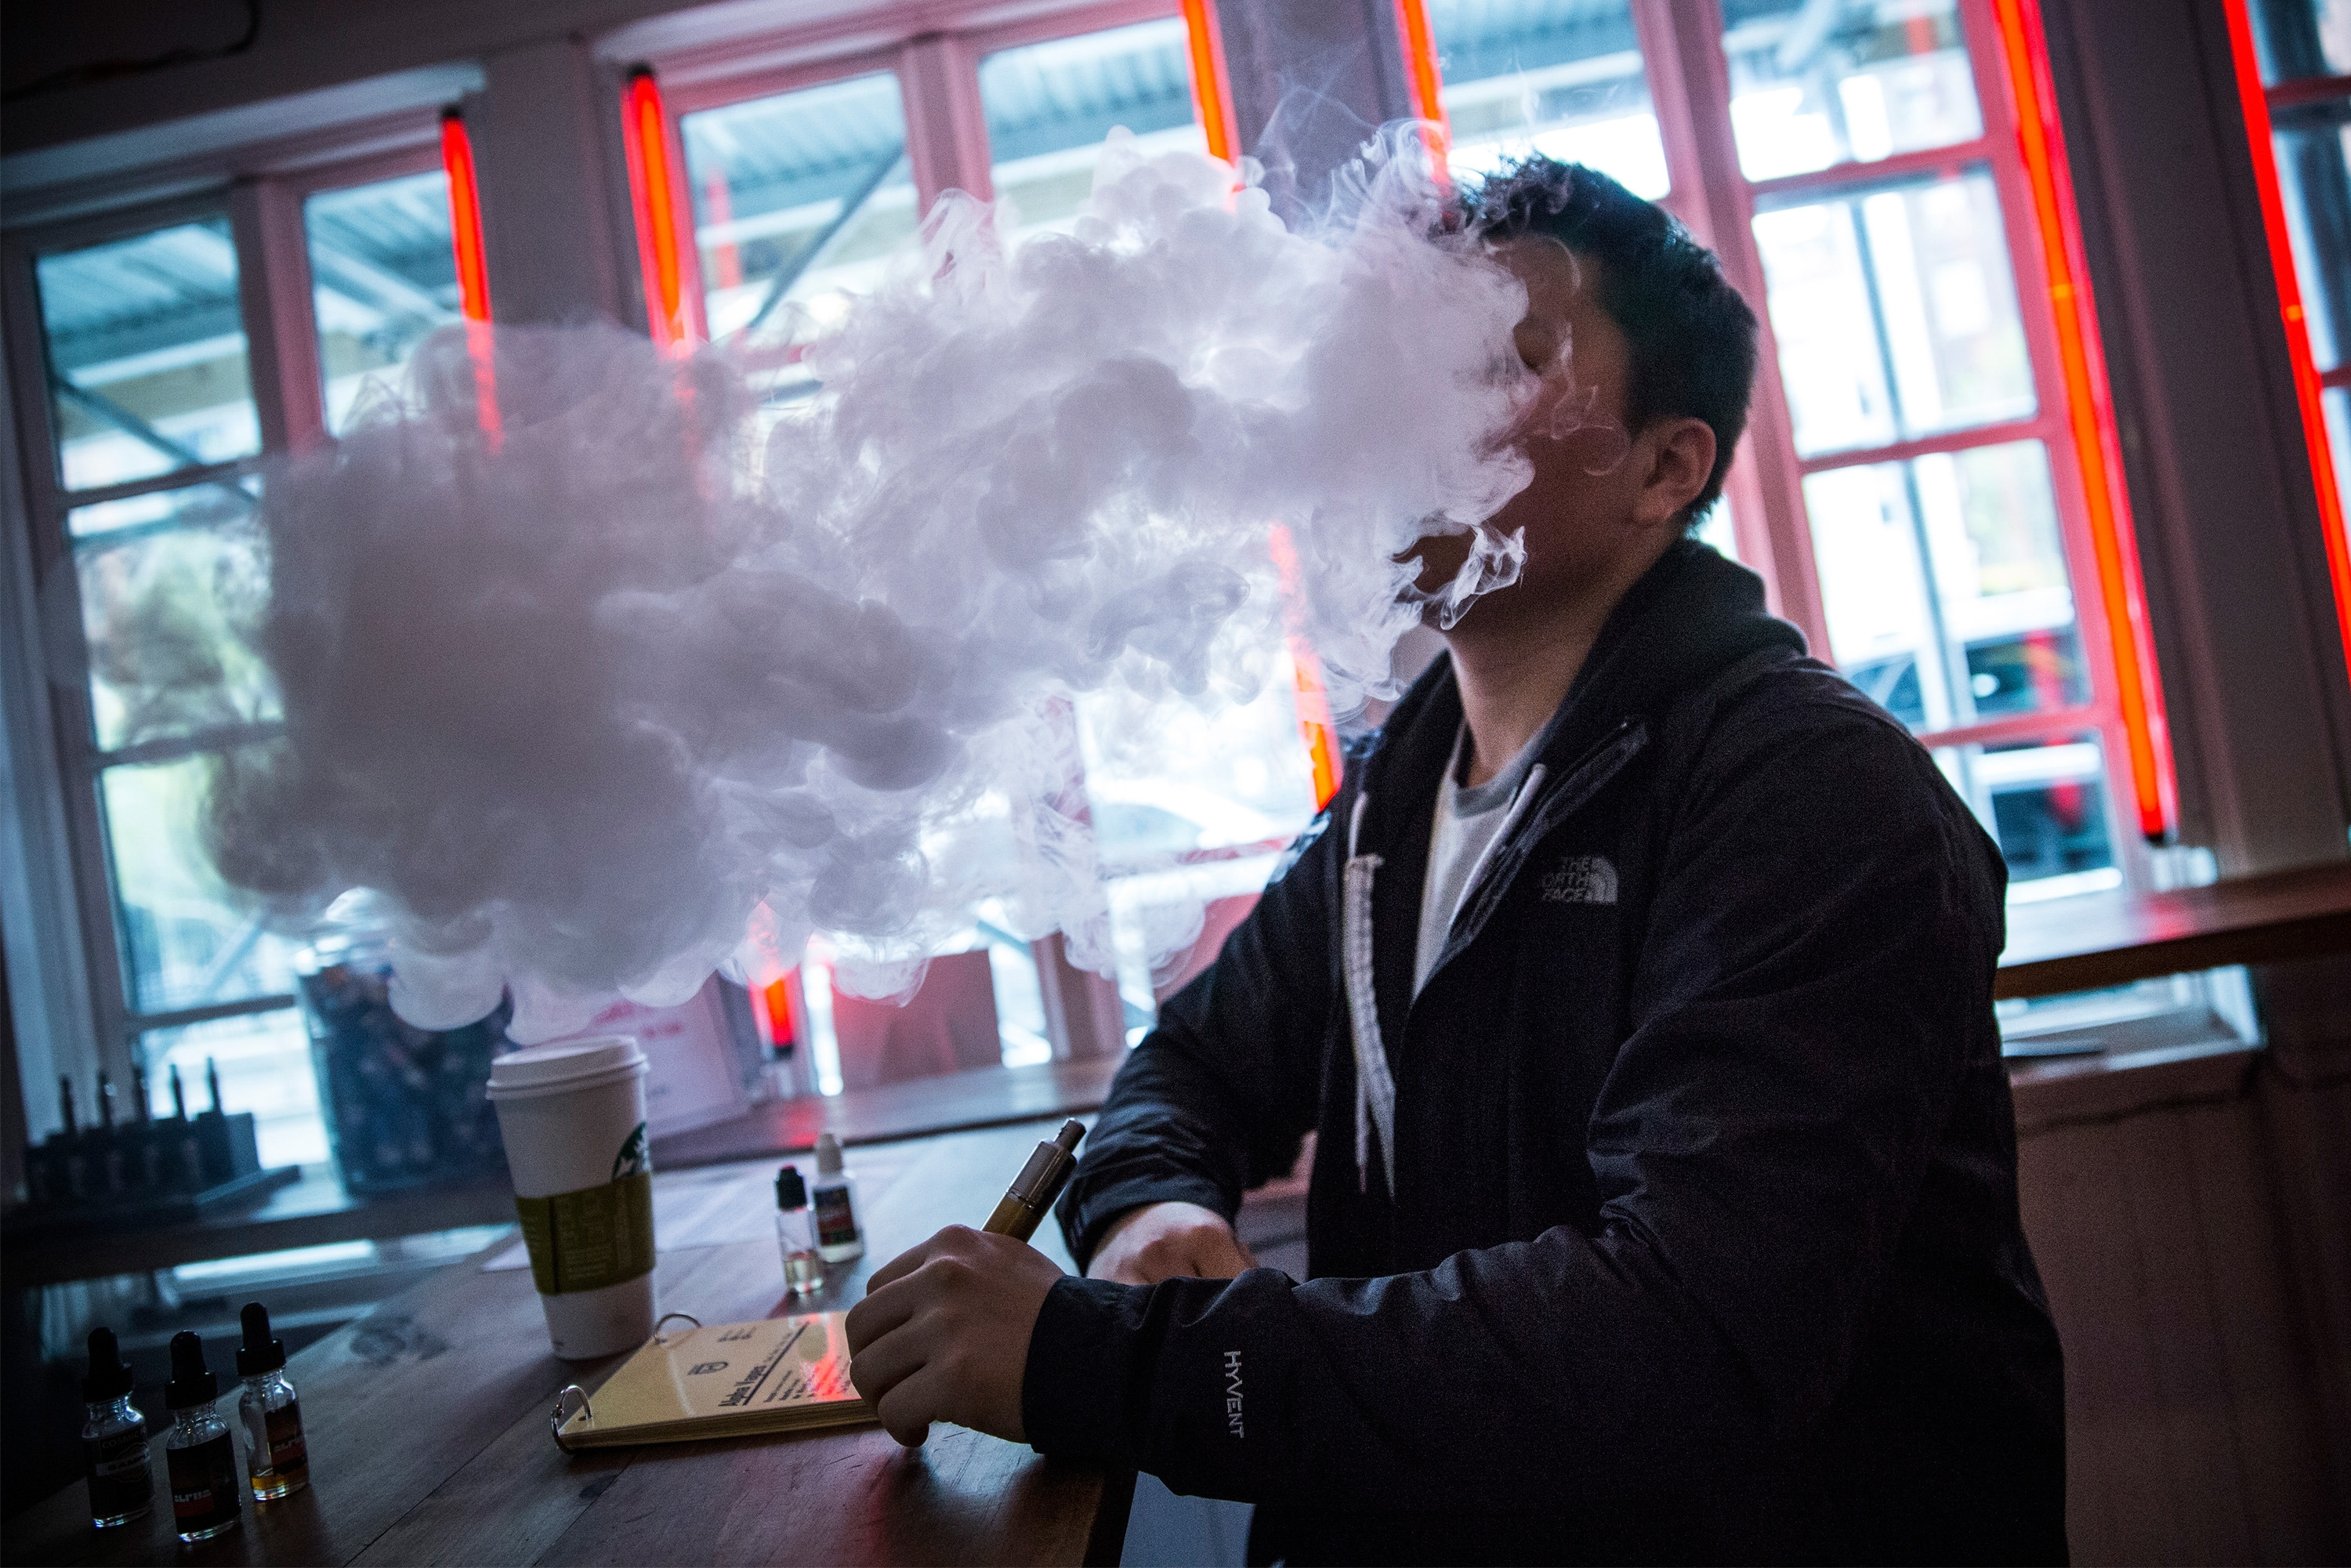 Use of electronic cigarettes in public places is now heavily regulated in New York City. (Getty Images)